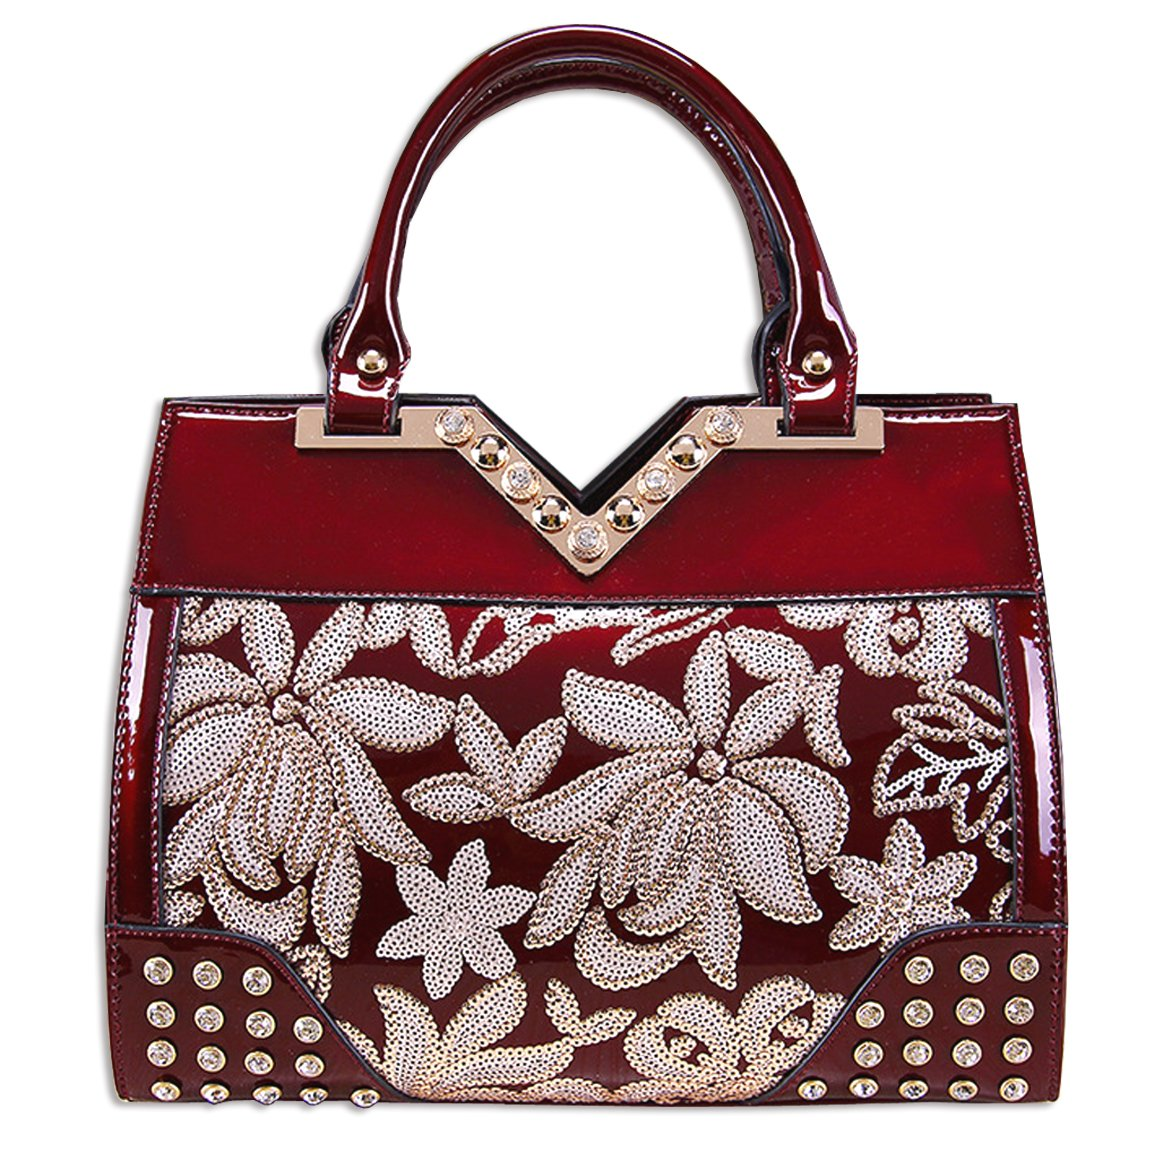 KAXIDY Flowers Handbags Patent Leather Embroidery Lace Handbag Shouder Bags (Wine-red)